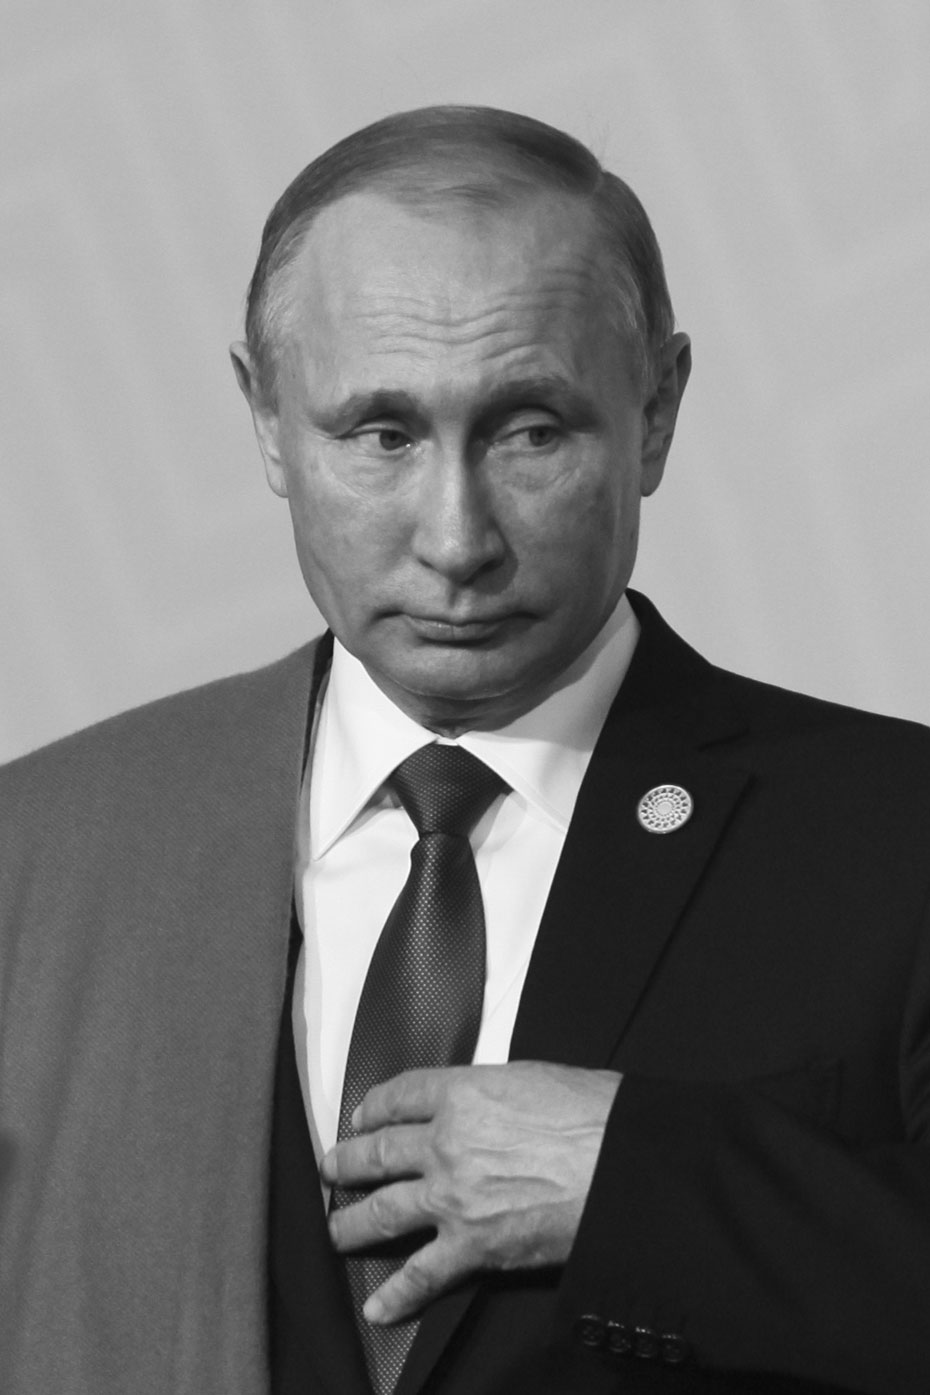 Vladimir Putin, President of Russia. Official photograph of the APEC Presidents Summit 2016 in Lima.